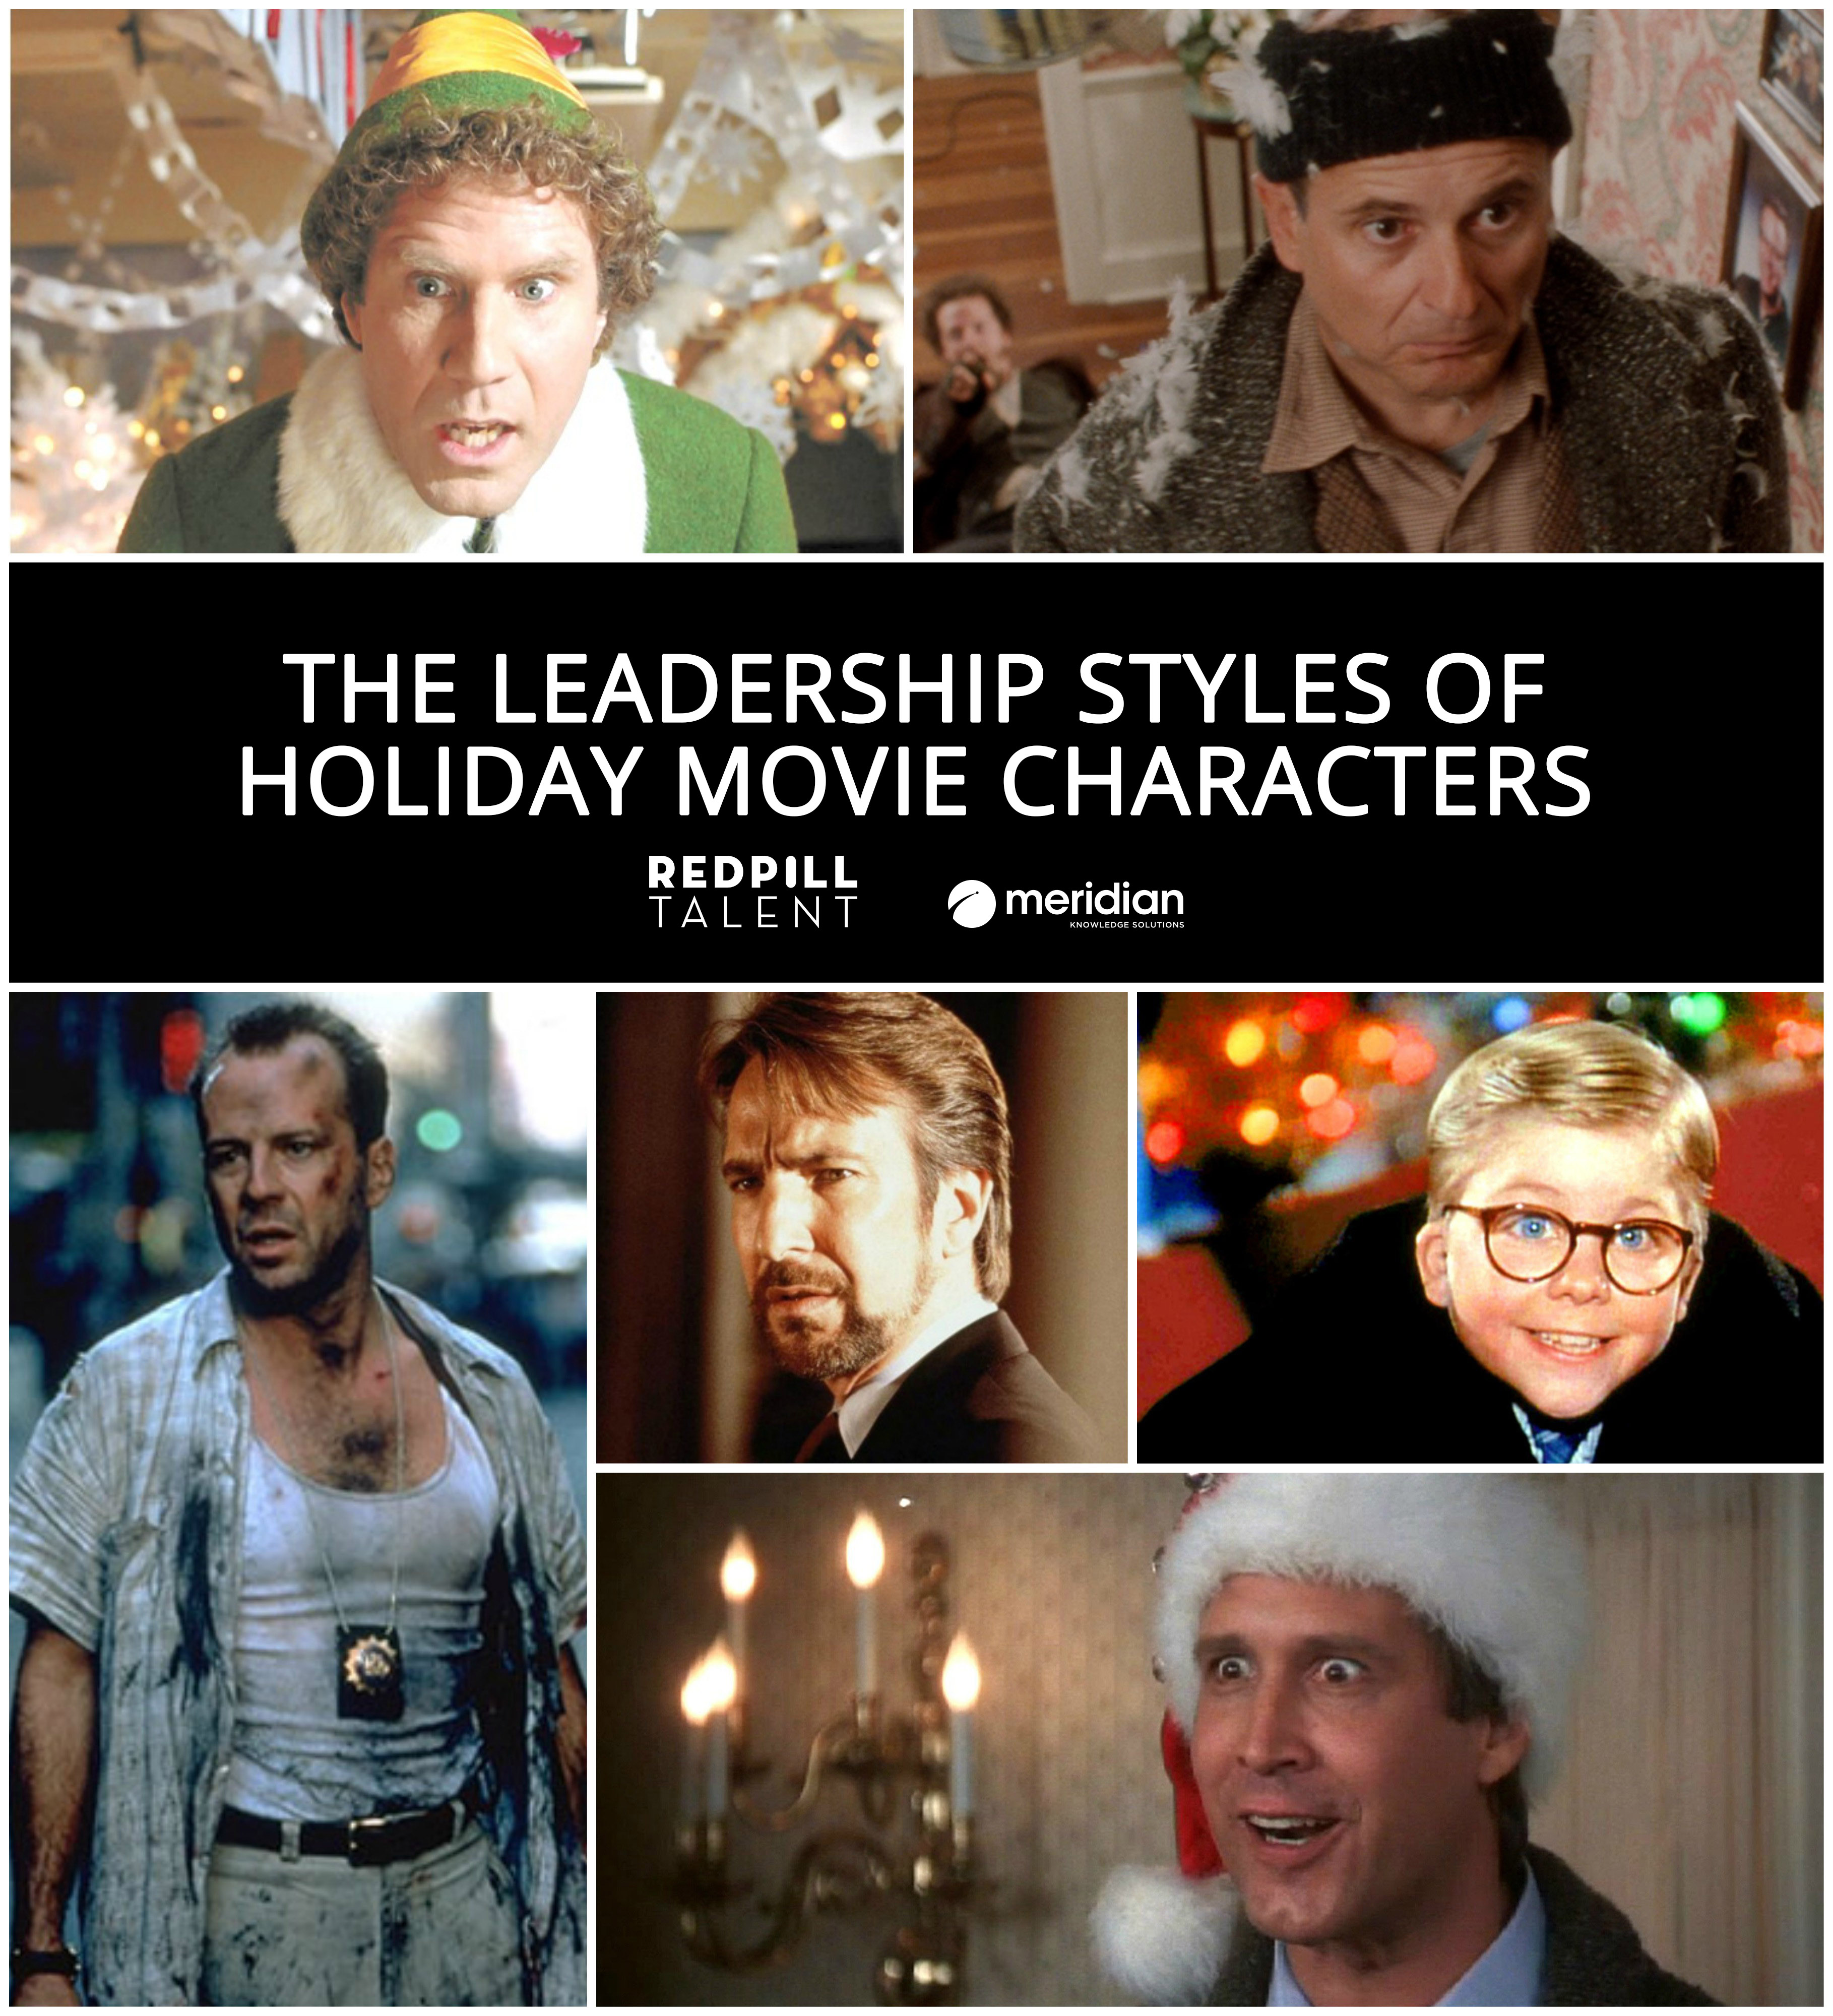 The Leadership Styles of Holiday Movie Characters